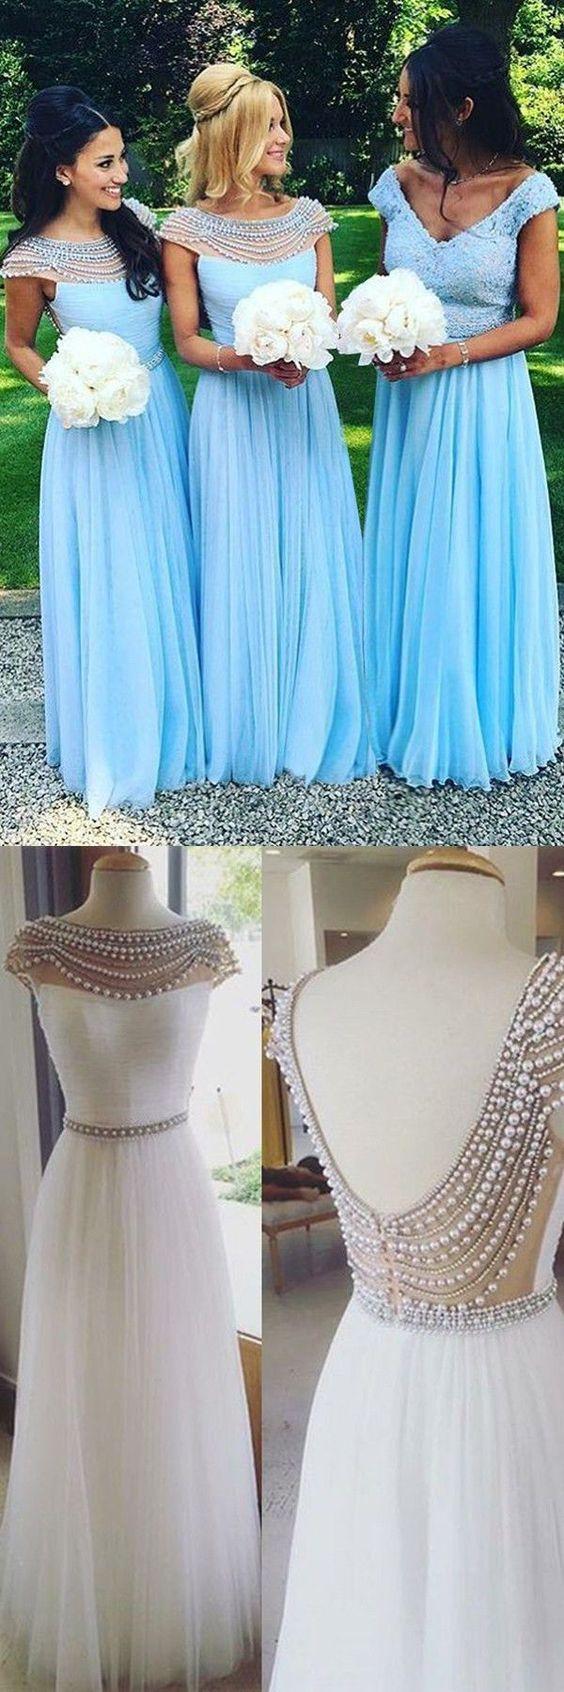 bridesmaid dress,white bridesmaid dress,baby blue bridesmaid dress,party…: